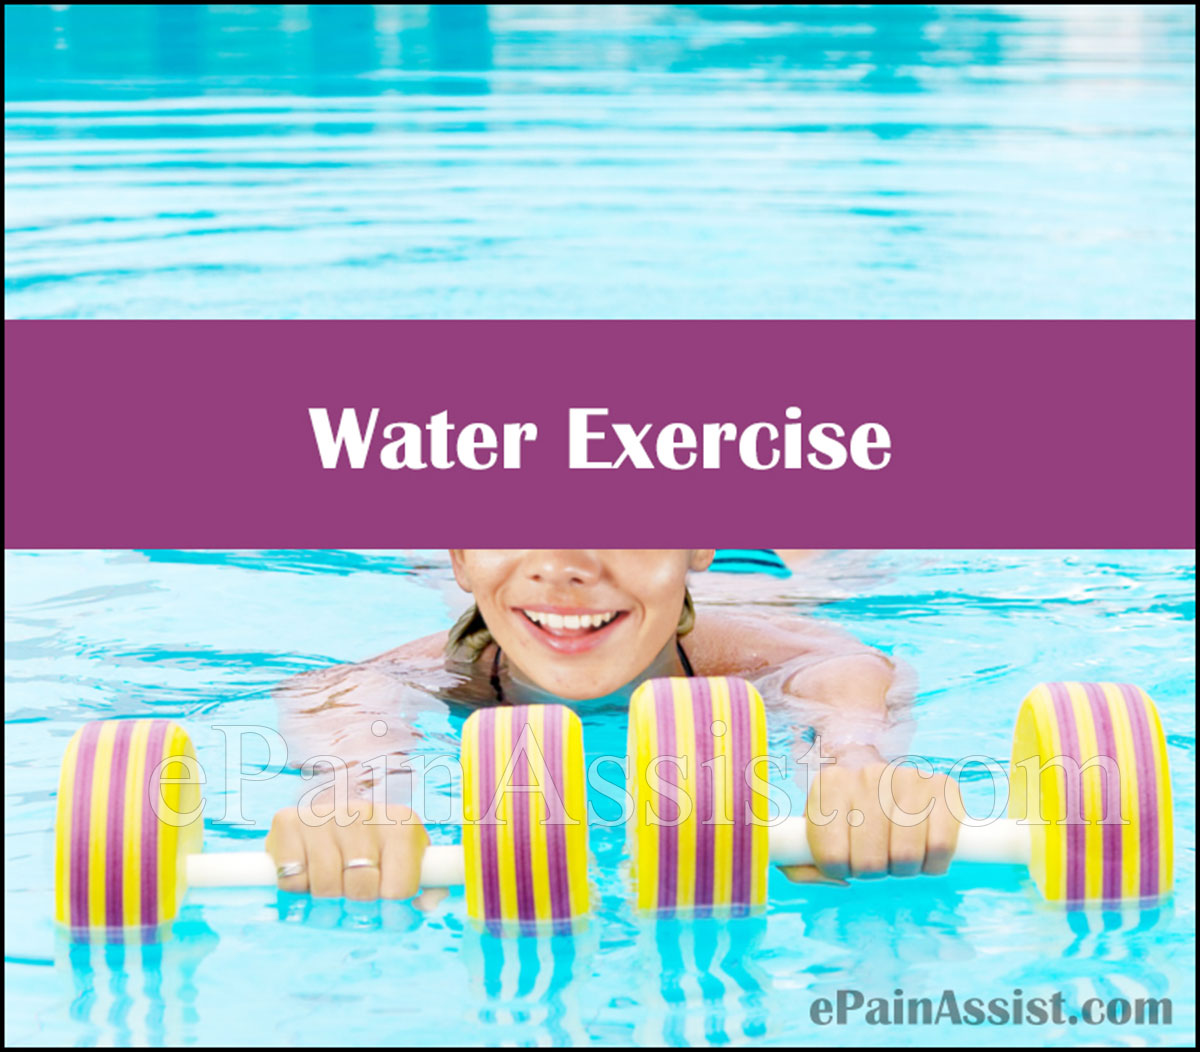 Water Exercise: Facts, Advantages, Benefits, How To Exercise In Pool